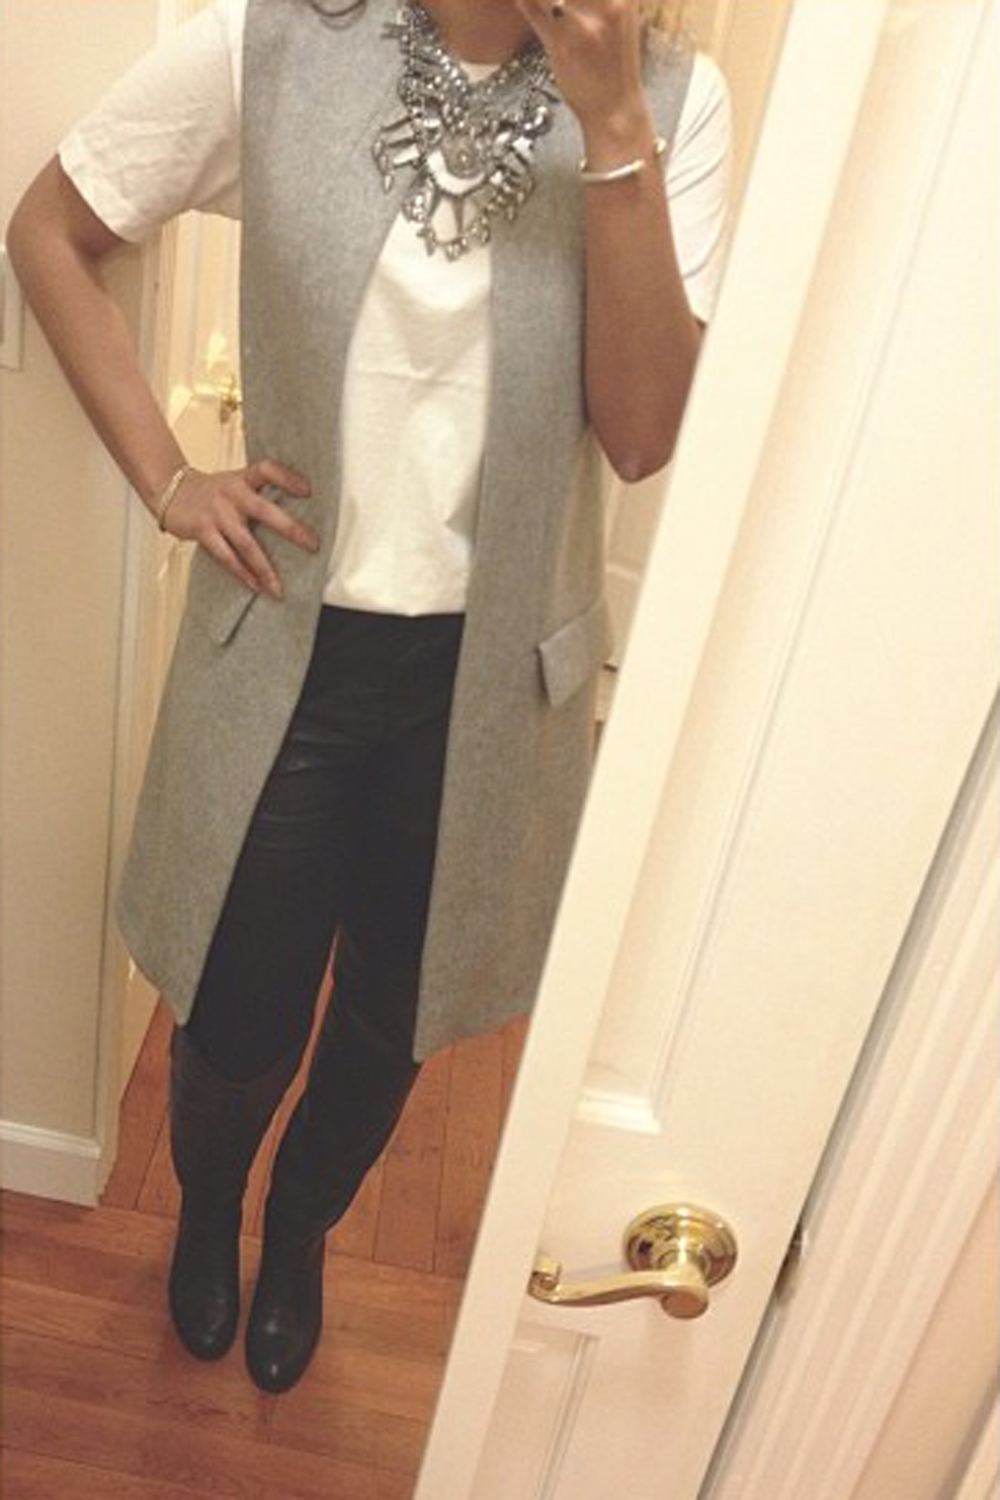 Wearing: Zara Necklace, Vest, & Boots, H&M Shorts